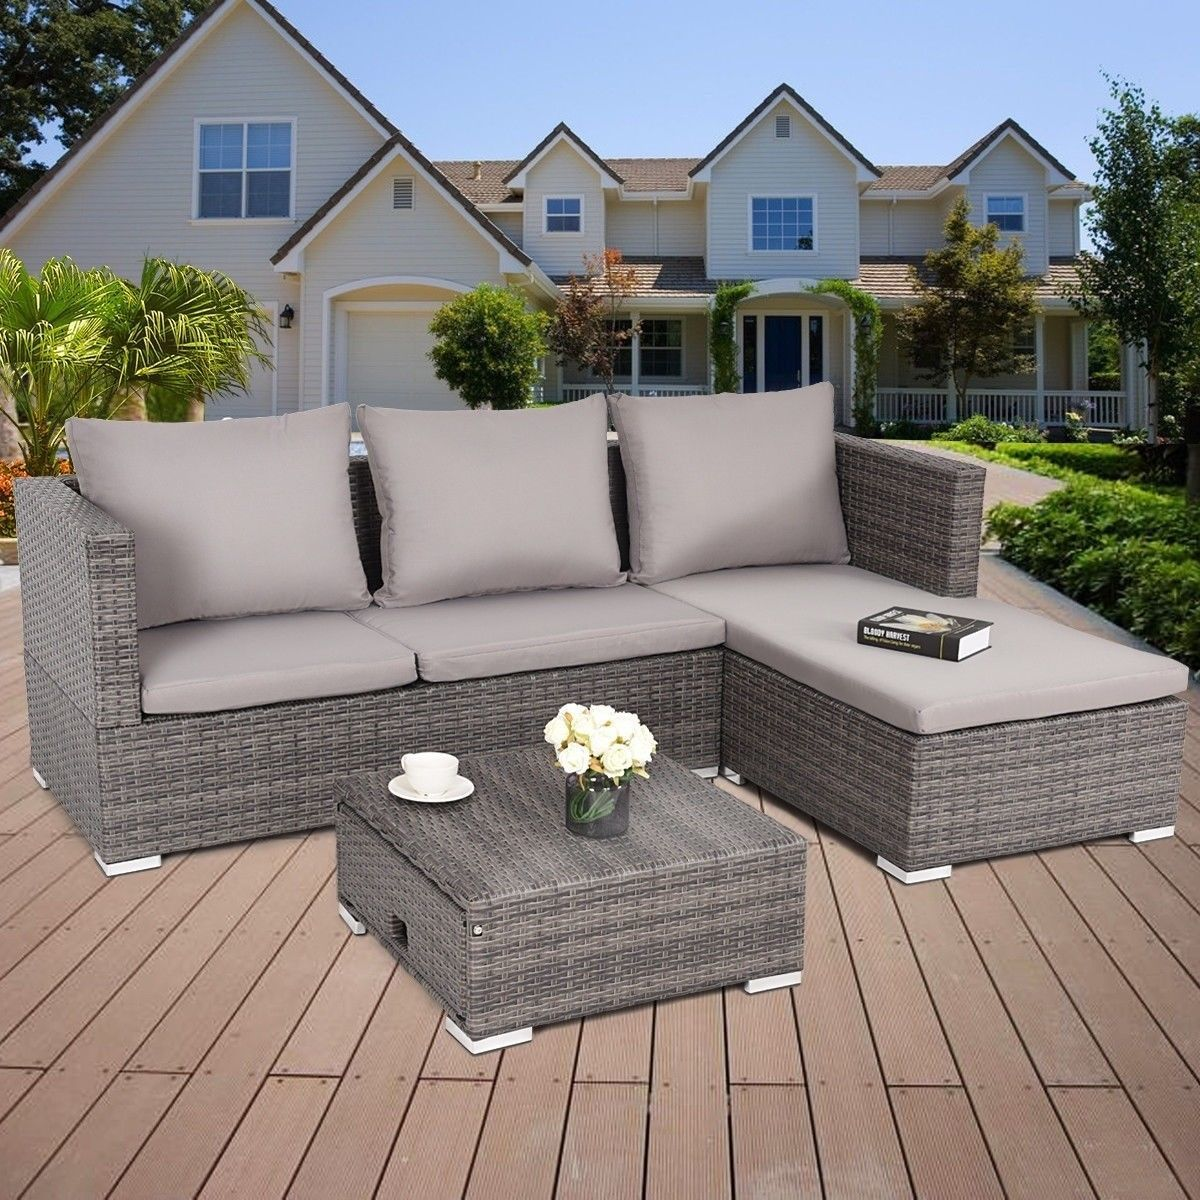 Primary image for 3 Pcs Rattan Sofa Furniture Set Adjustable Seat Outdoor Patio Sets Backyard Sofa